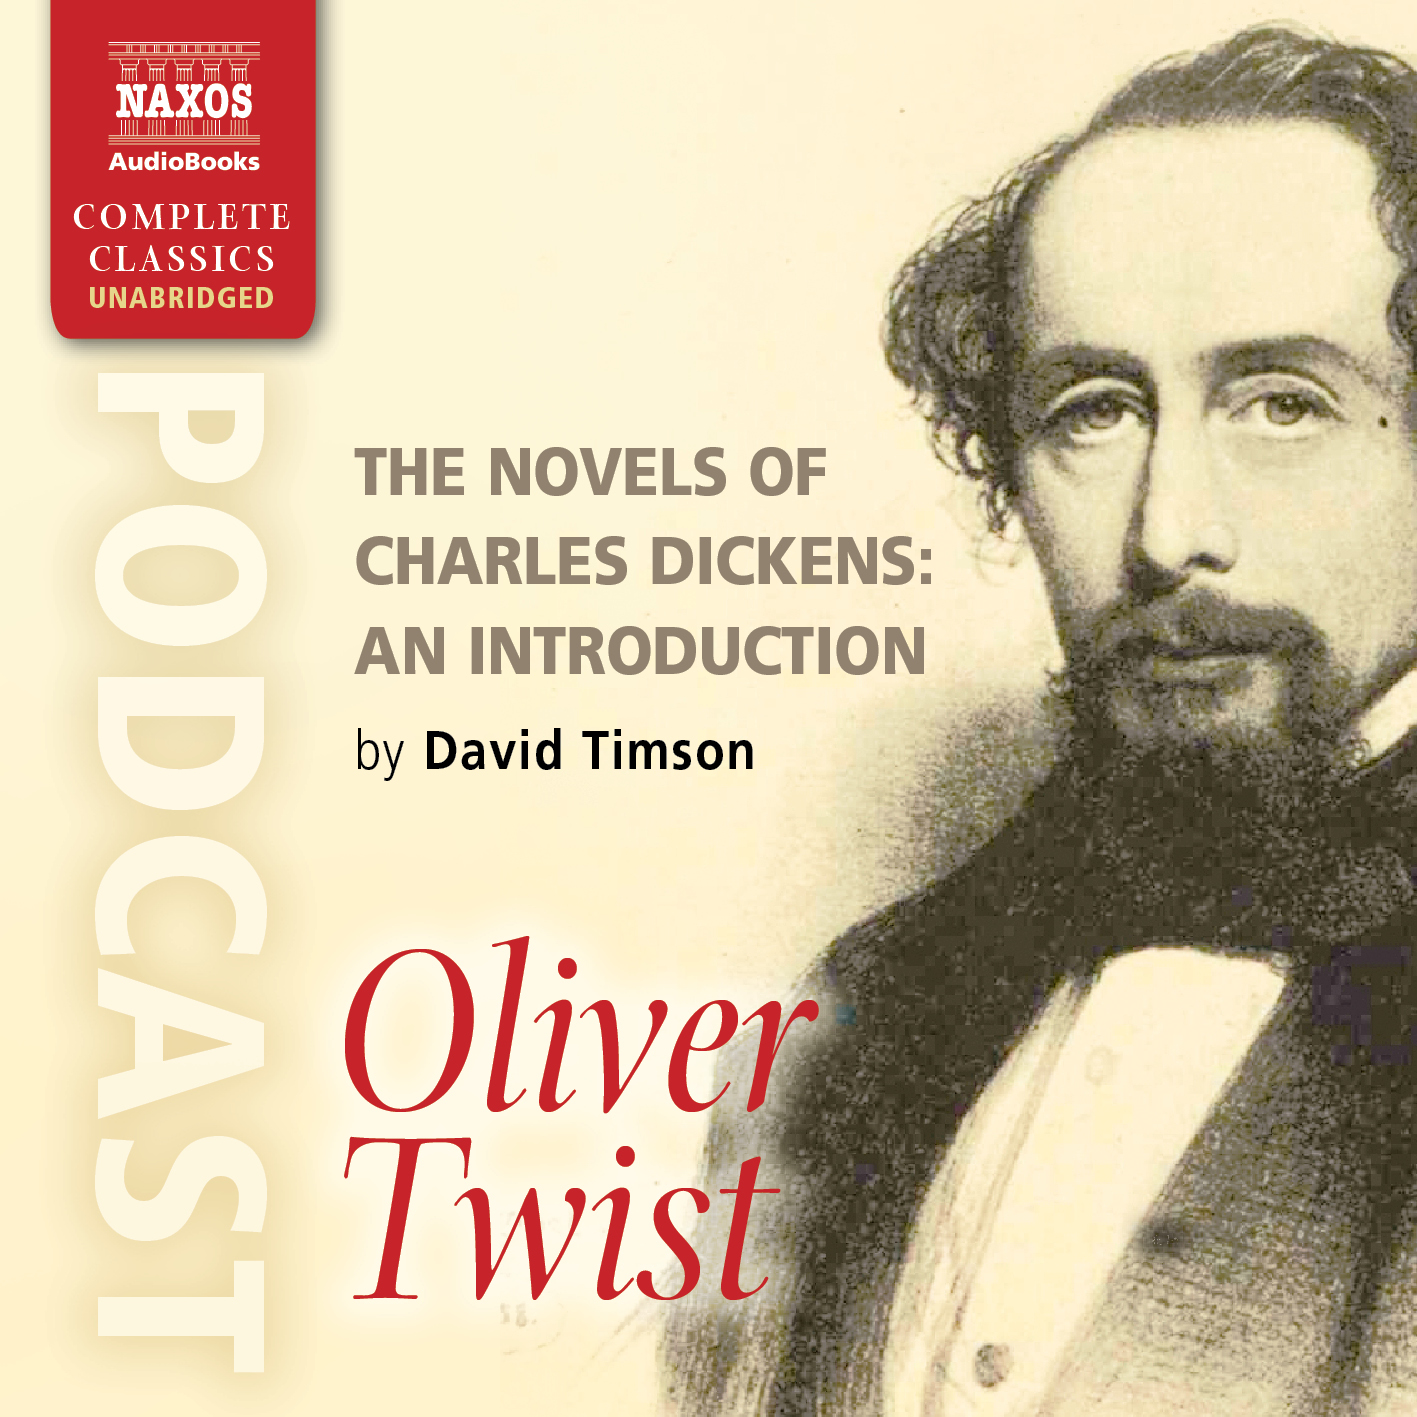 https://naxosaudiobooks.com/wp-content/uploads/2019/08/NA0394_Oliver_Twist_Podcast.jpg